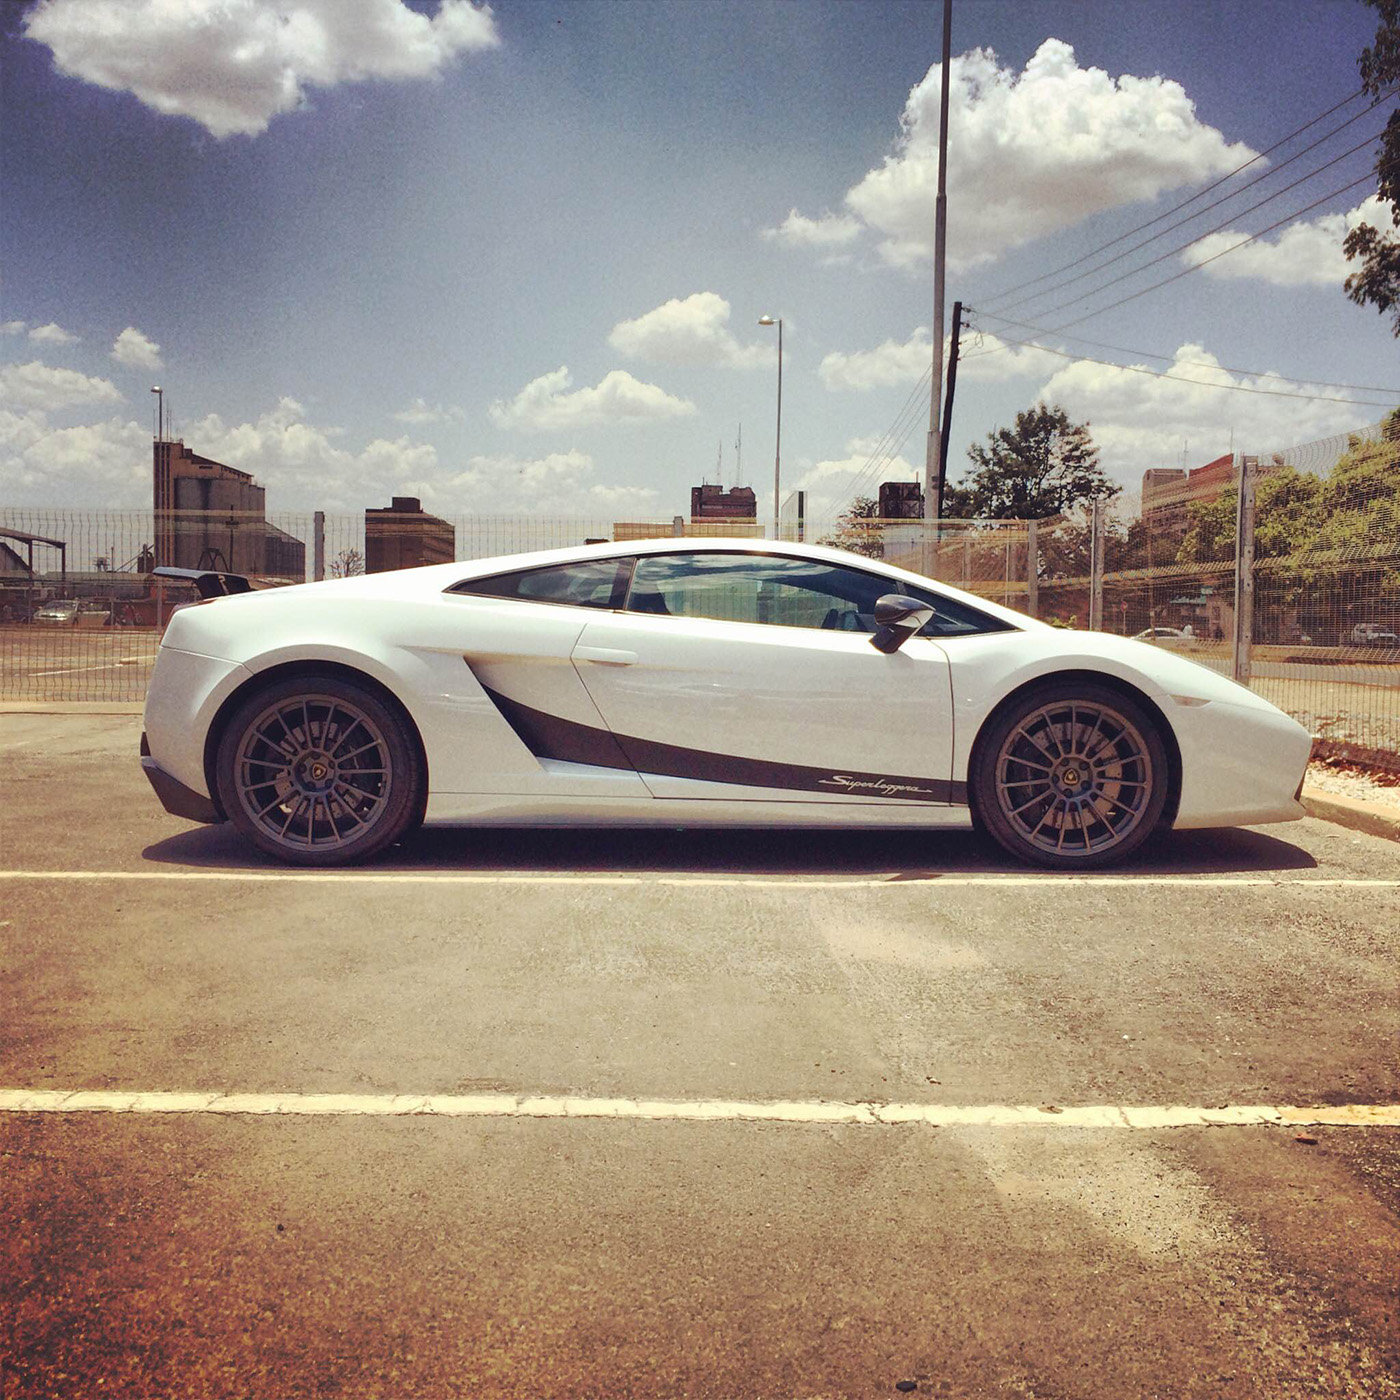 Top 50 Supercars: You Can Even Find Supercars In Zambia